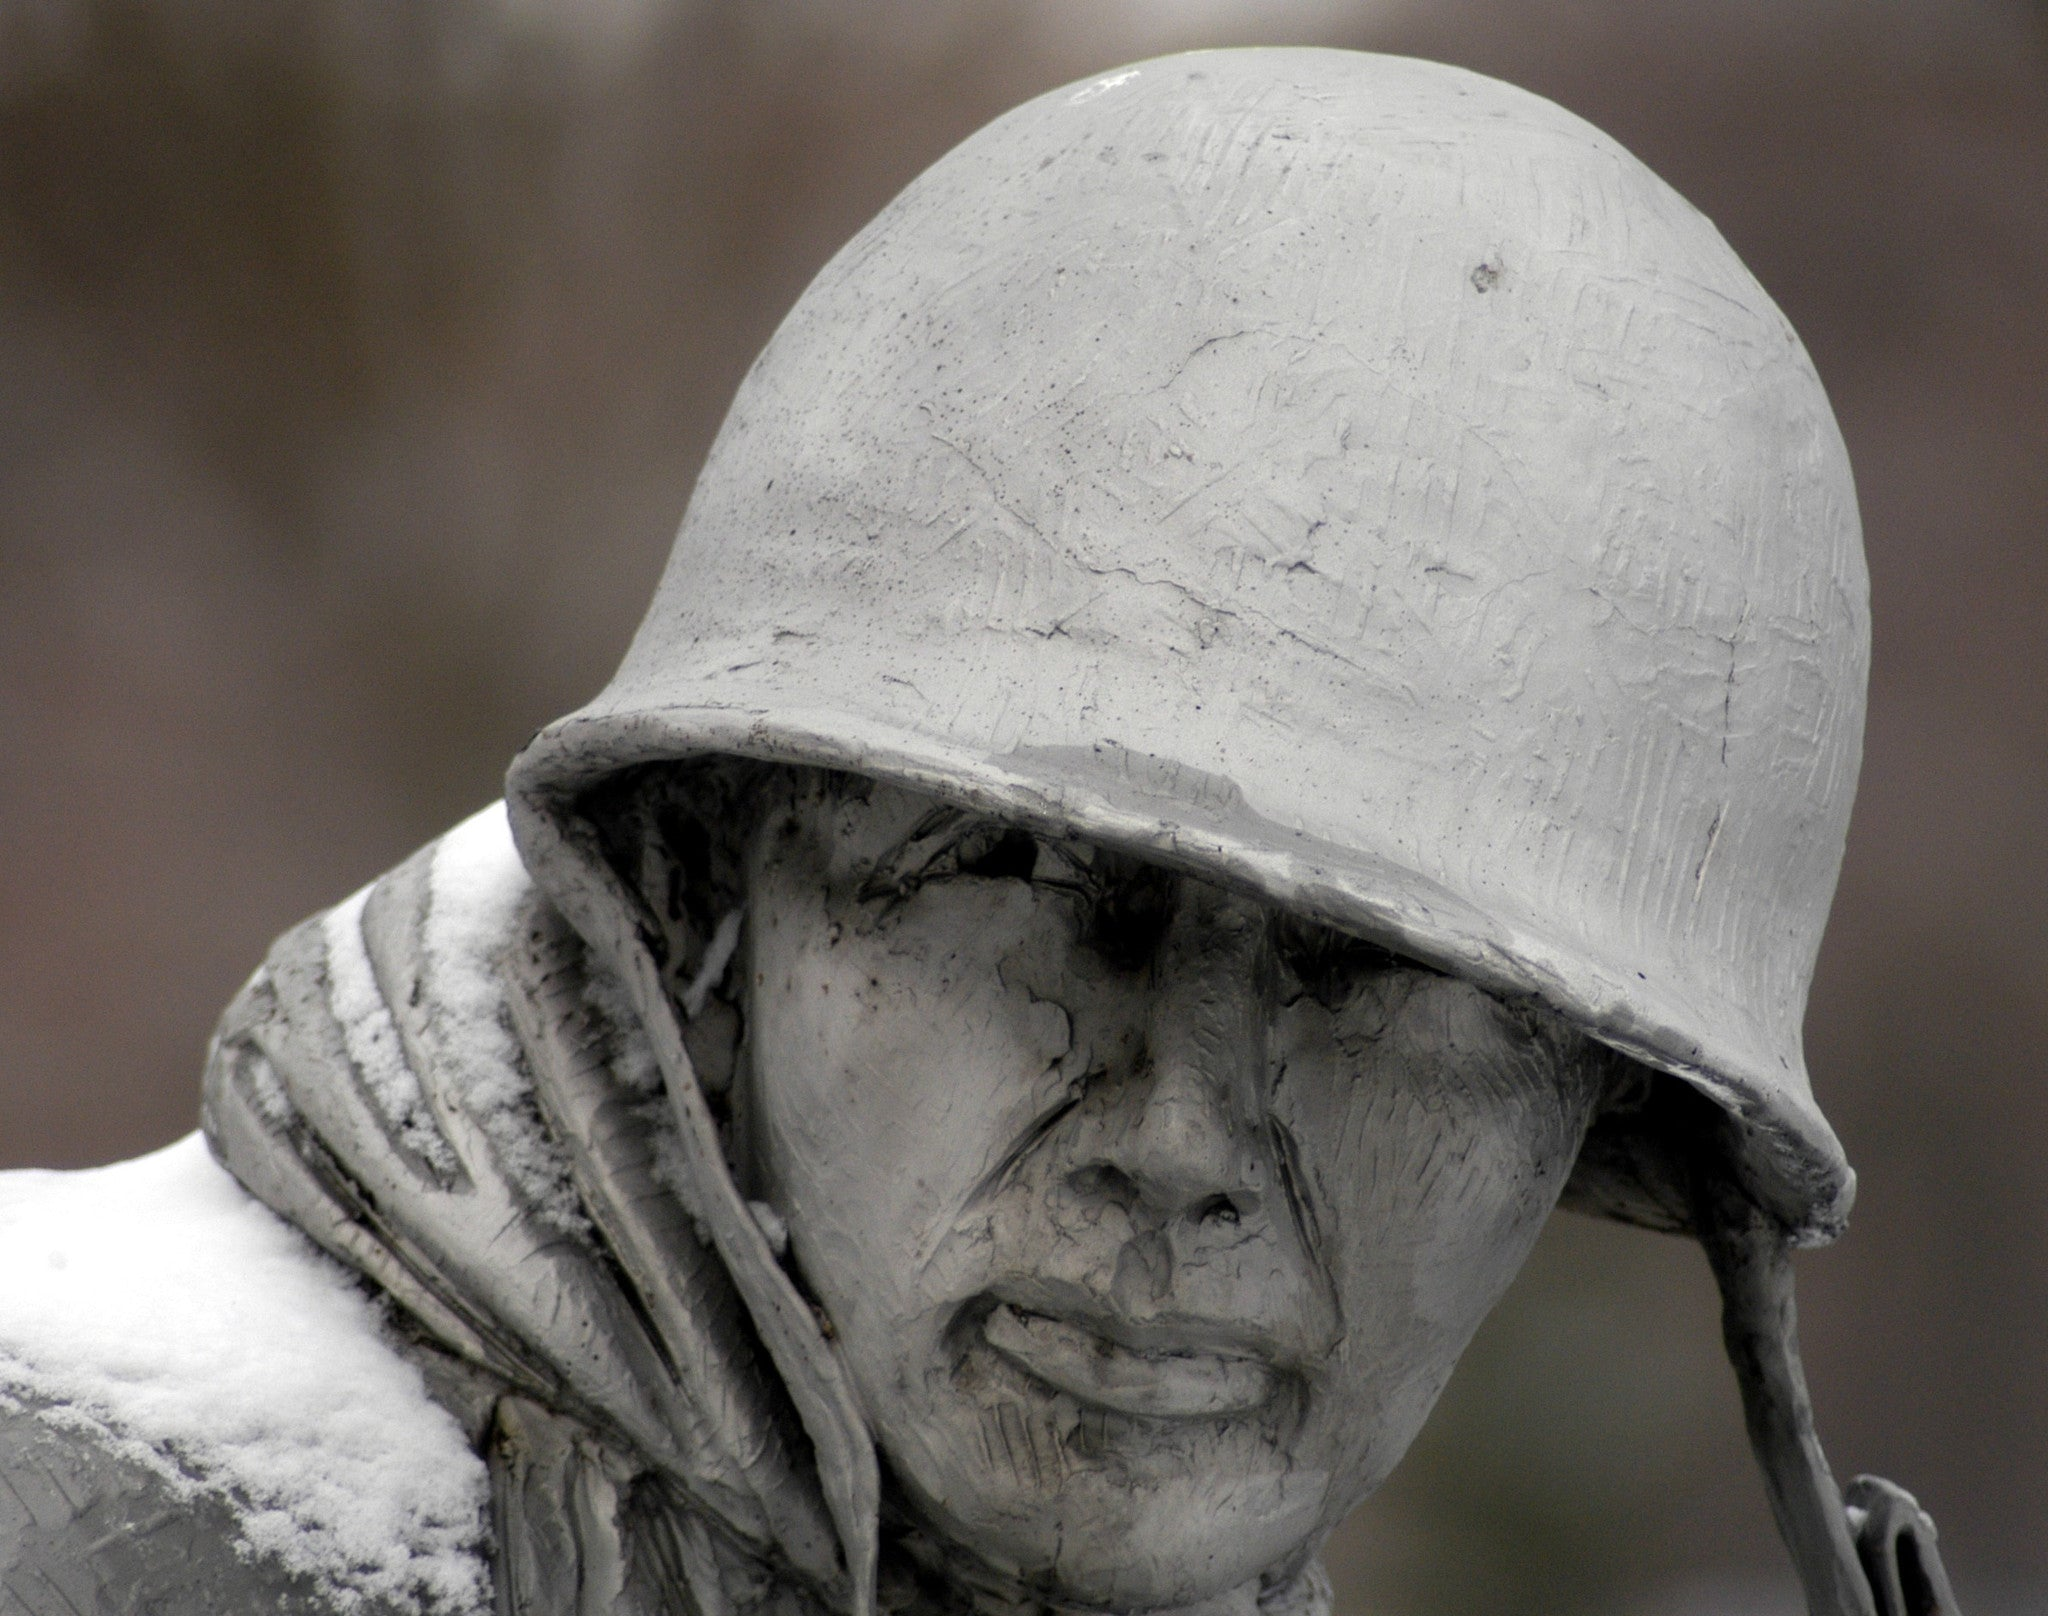 "Korean War Veterans Memorial in Washington, D.C. March 8, 2005 - 8 x 10"" Photograph"